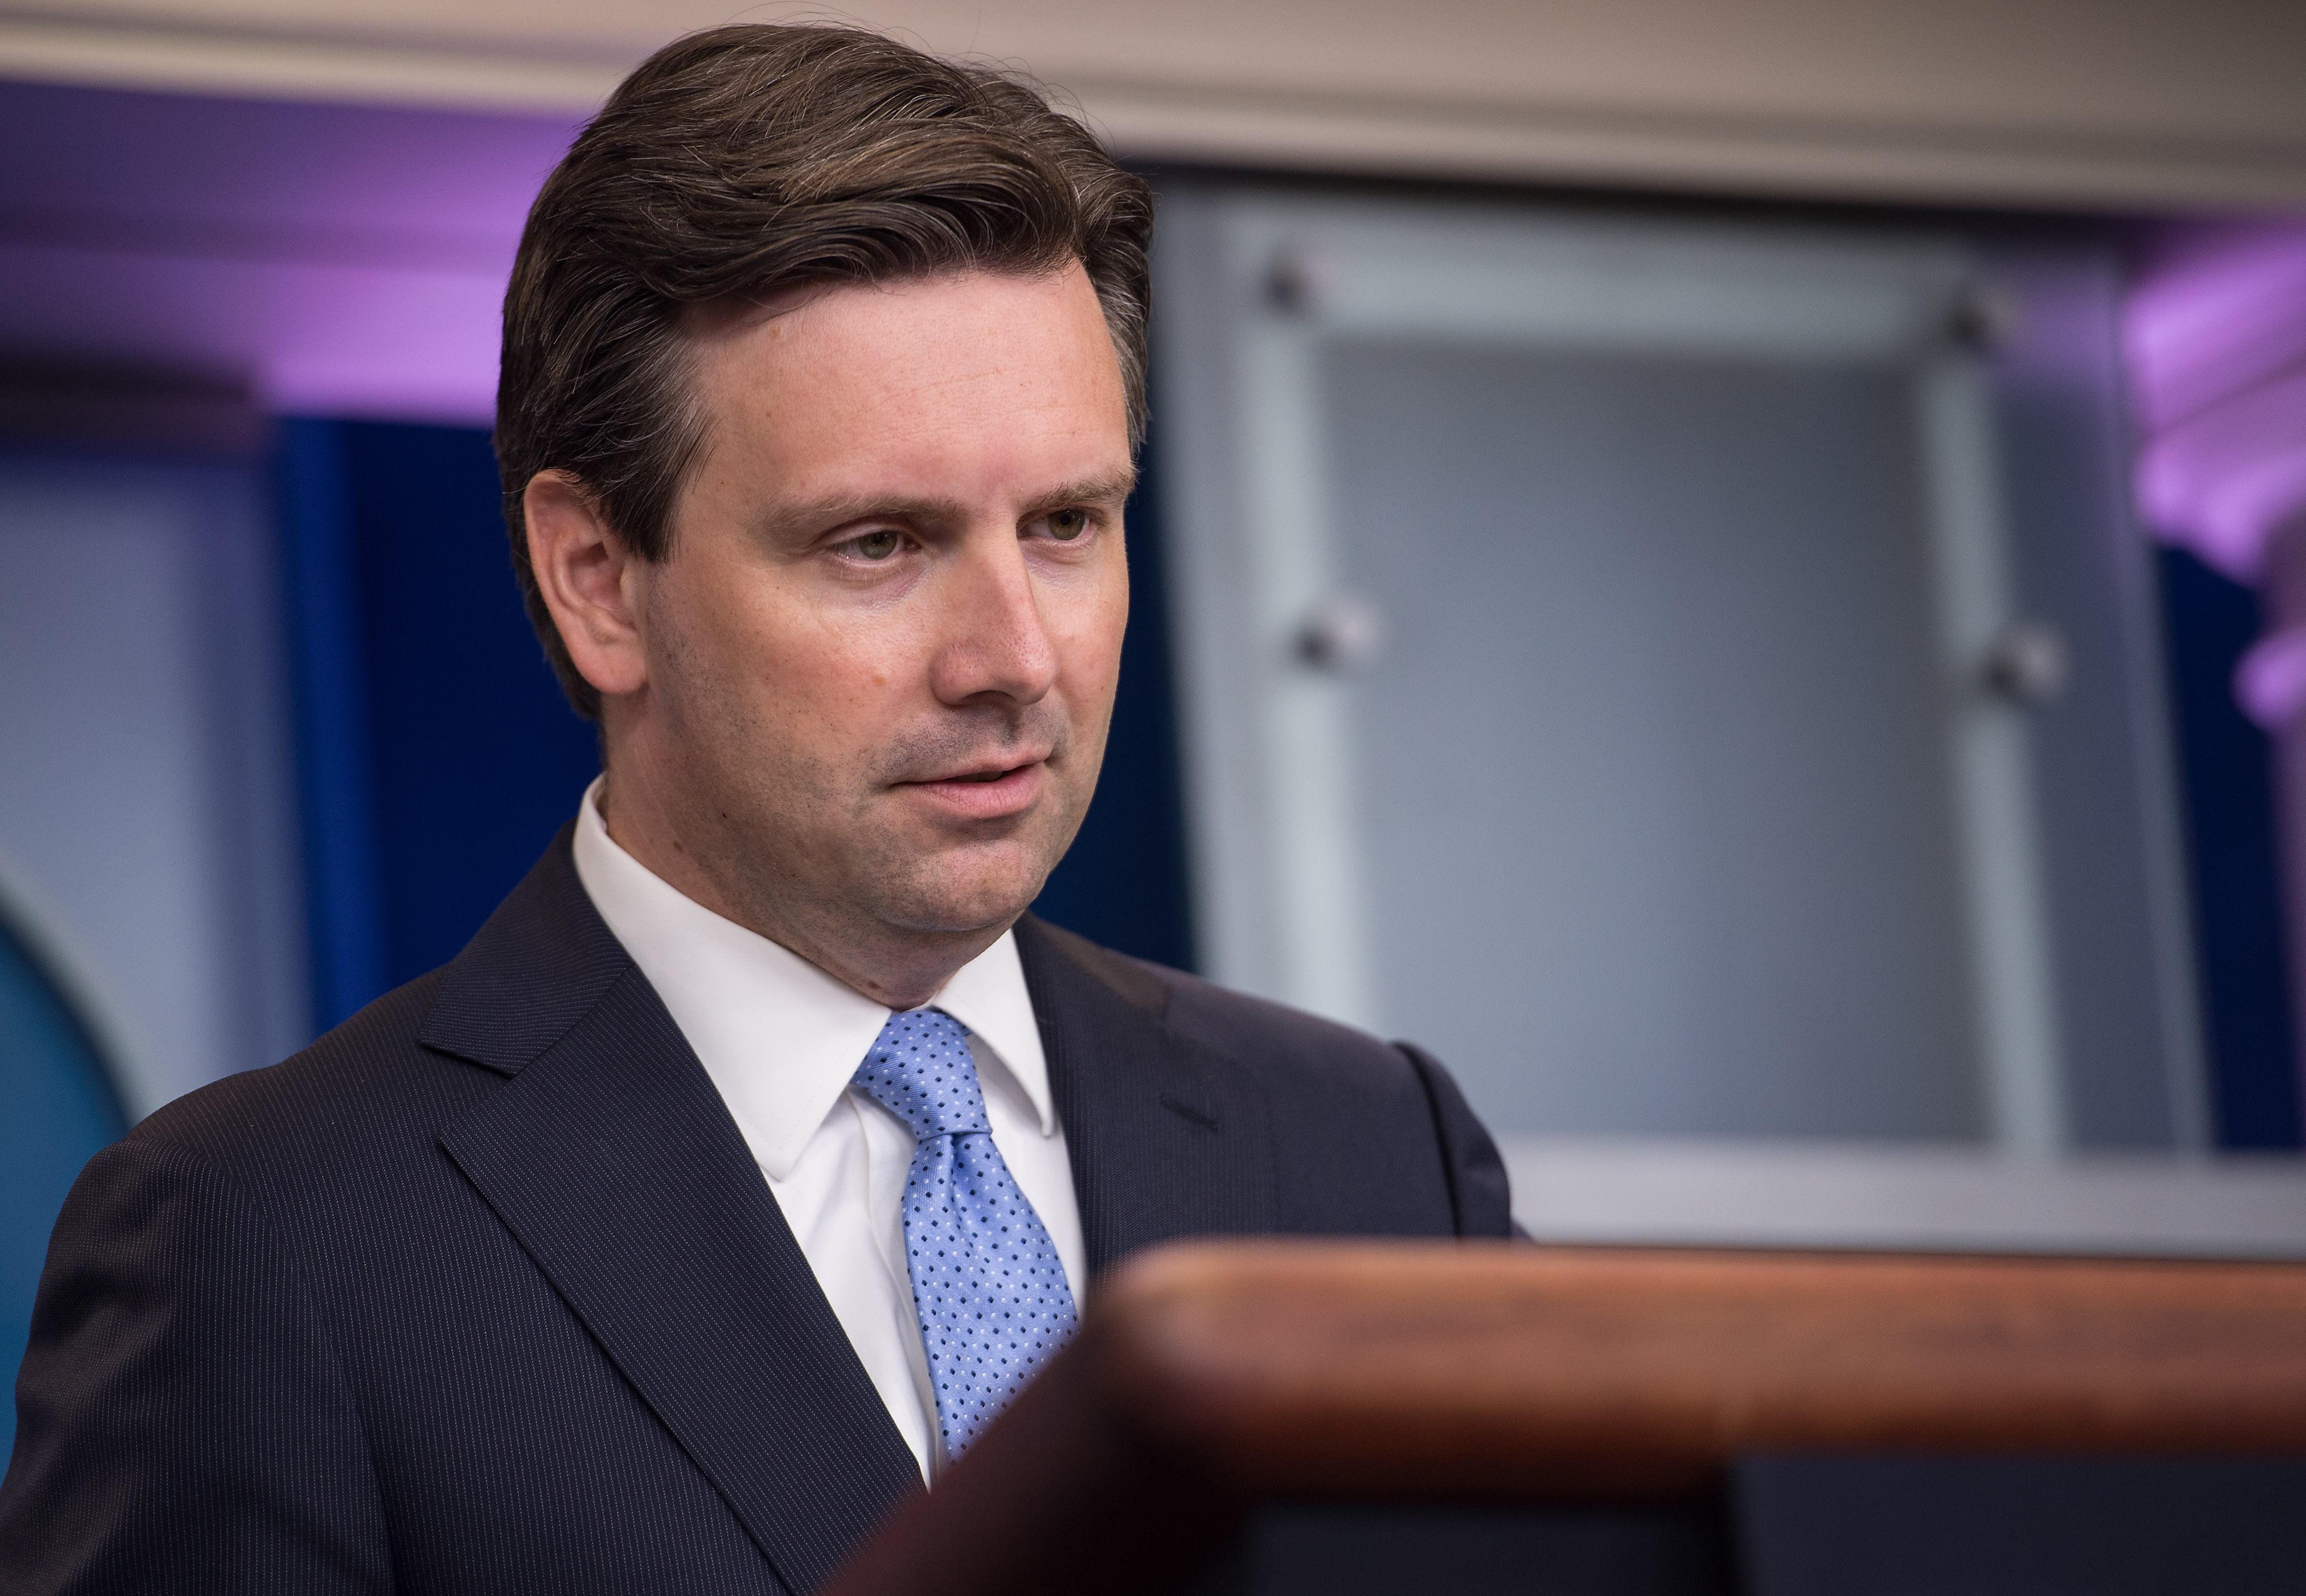 White House spokesman Josh Earnest speaks during the daily press briefing at the White House in Washington, DC, on August 30, 2016. The White House said Augugst 30, 2016 it still hoped to wrap up negotiations on a massive EU-US trade deal by year's end, after France and Germany called the pact into question. White House spokesman Josh Earnest said President Barack Obama will send his top trade negotiator to Europe in the coming months, pointedly rejecting French demands that negotiations be halted.  / AFP / NICHOLAS KAMM        (Photo credit should read NICHOLAS KAMM/AFP/Getty Images)